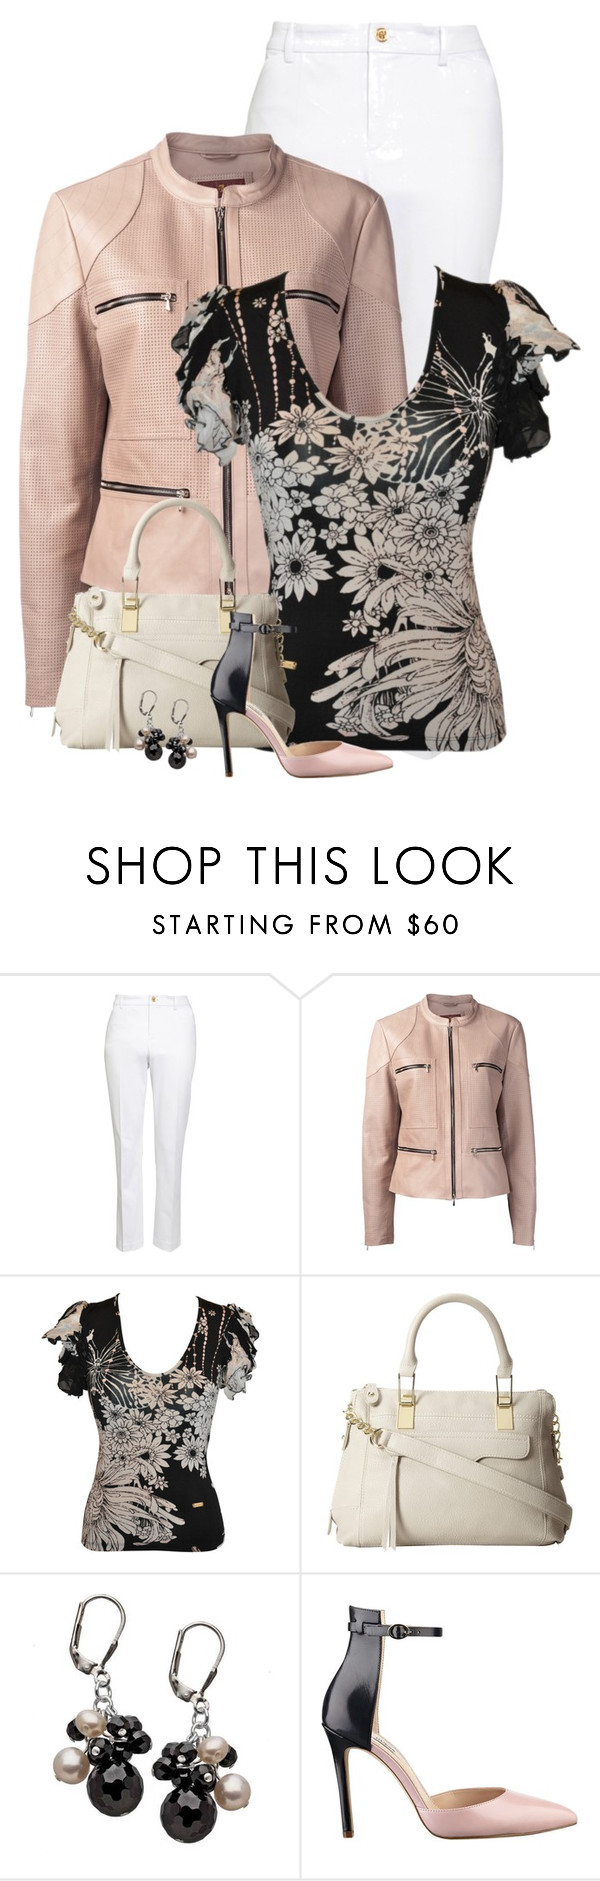 """""""Onyx Pearl"""" by meltog ❤ liked on Polyvore featuring Lauren Ralph Lauren, 7 For All Mankind, Roberto Cavalli, Steve Madden and GUESS"""